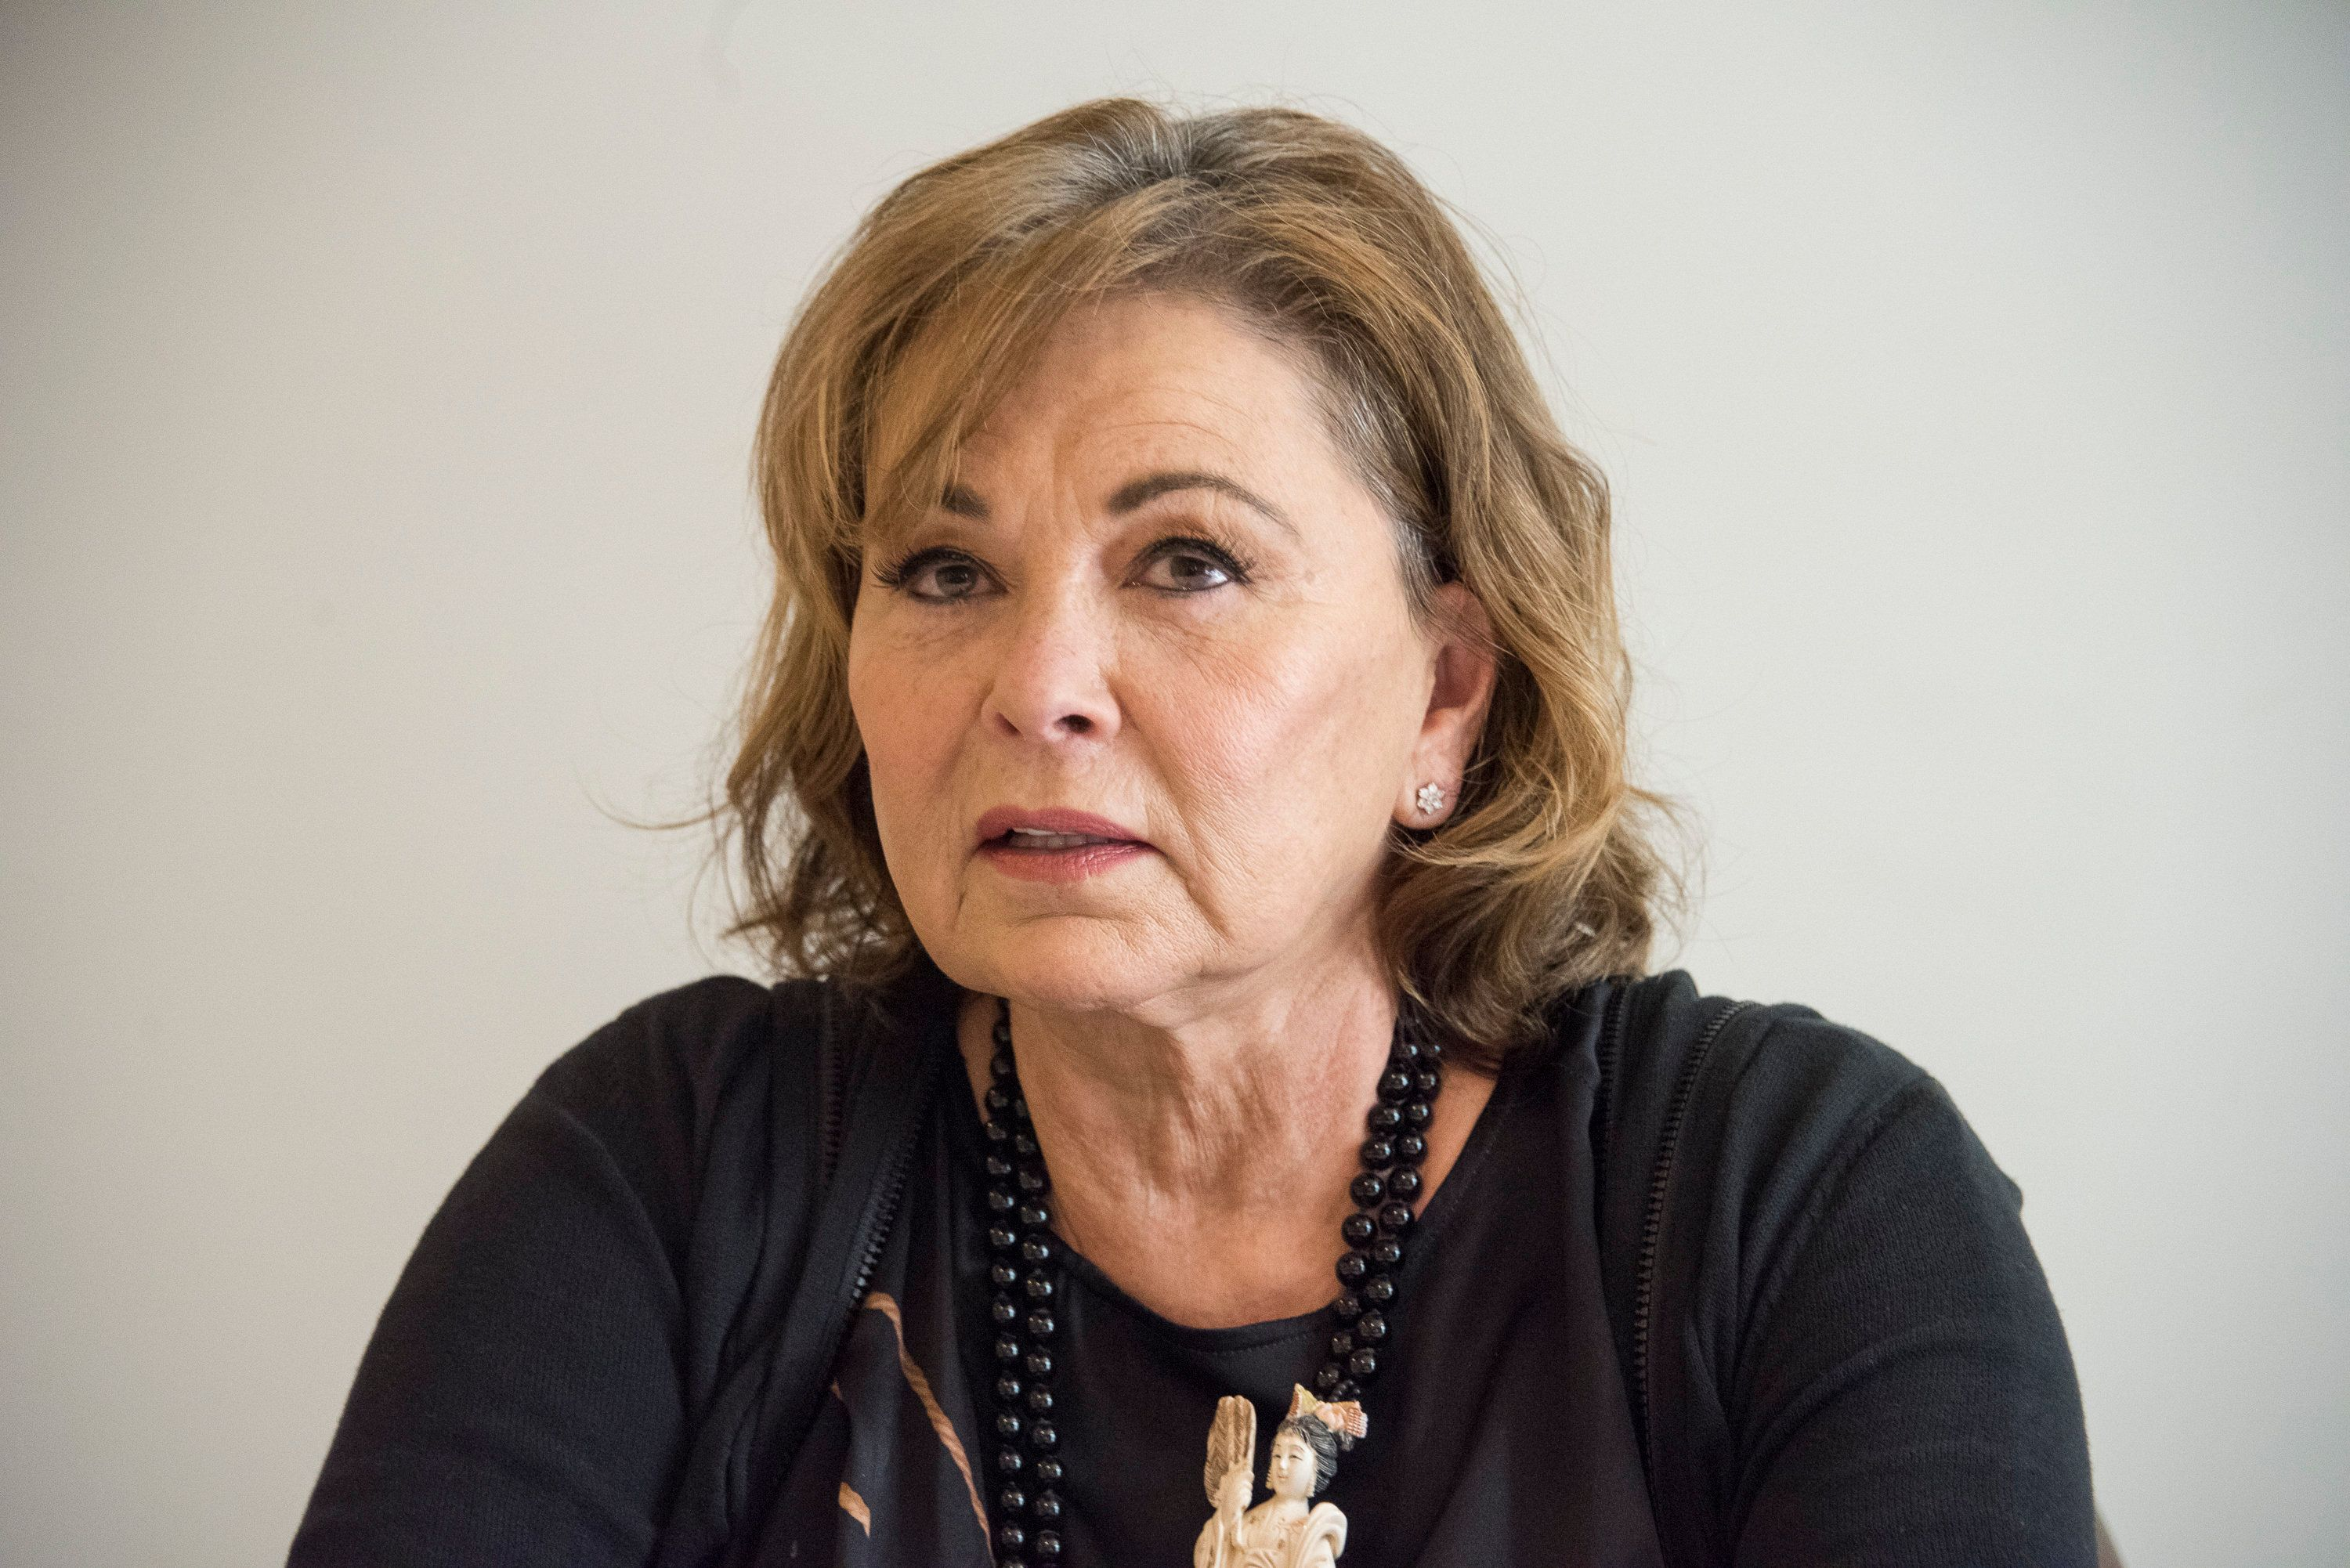 Roseanne Barr says she's 'never practiced racism' as she defends controversial tweet